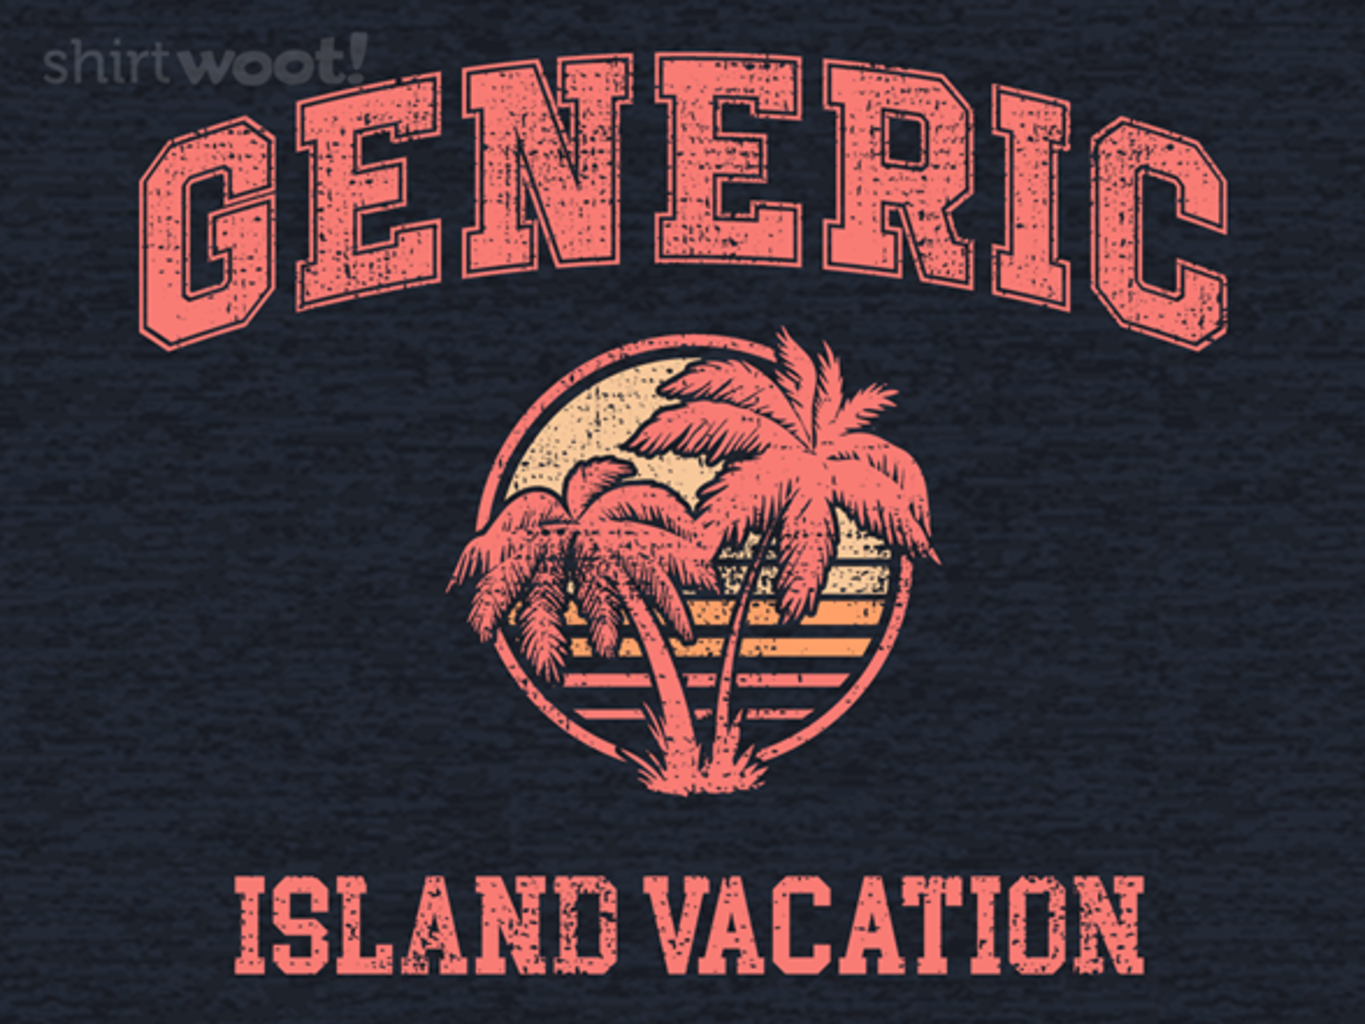 Woot!: Every Vacation Shirt Ever